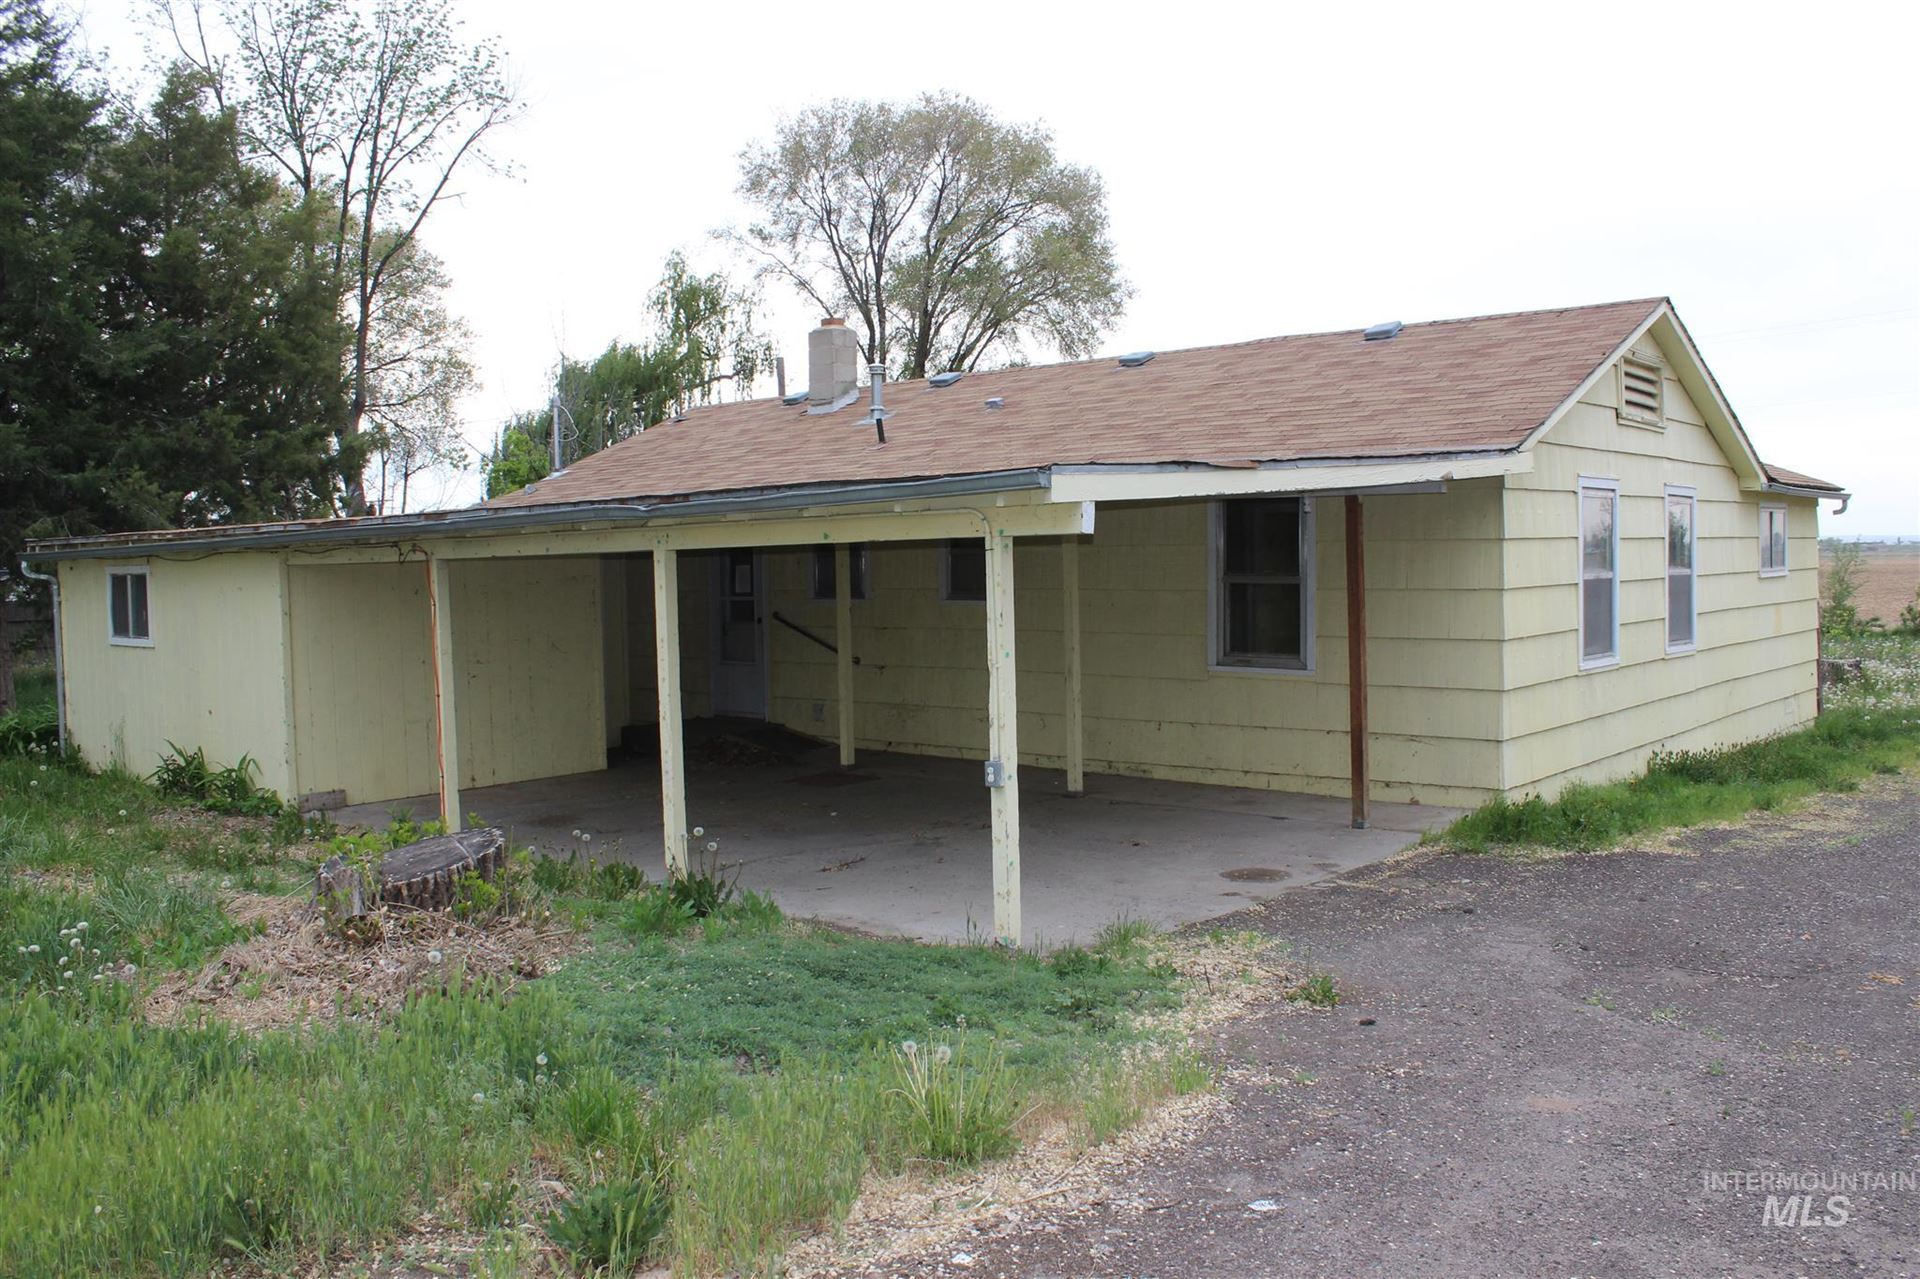 Photo of 3126A S 2200 E, Wendell, ID 83355 (MLS # 98772223)